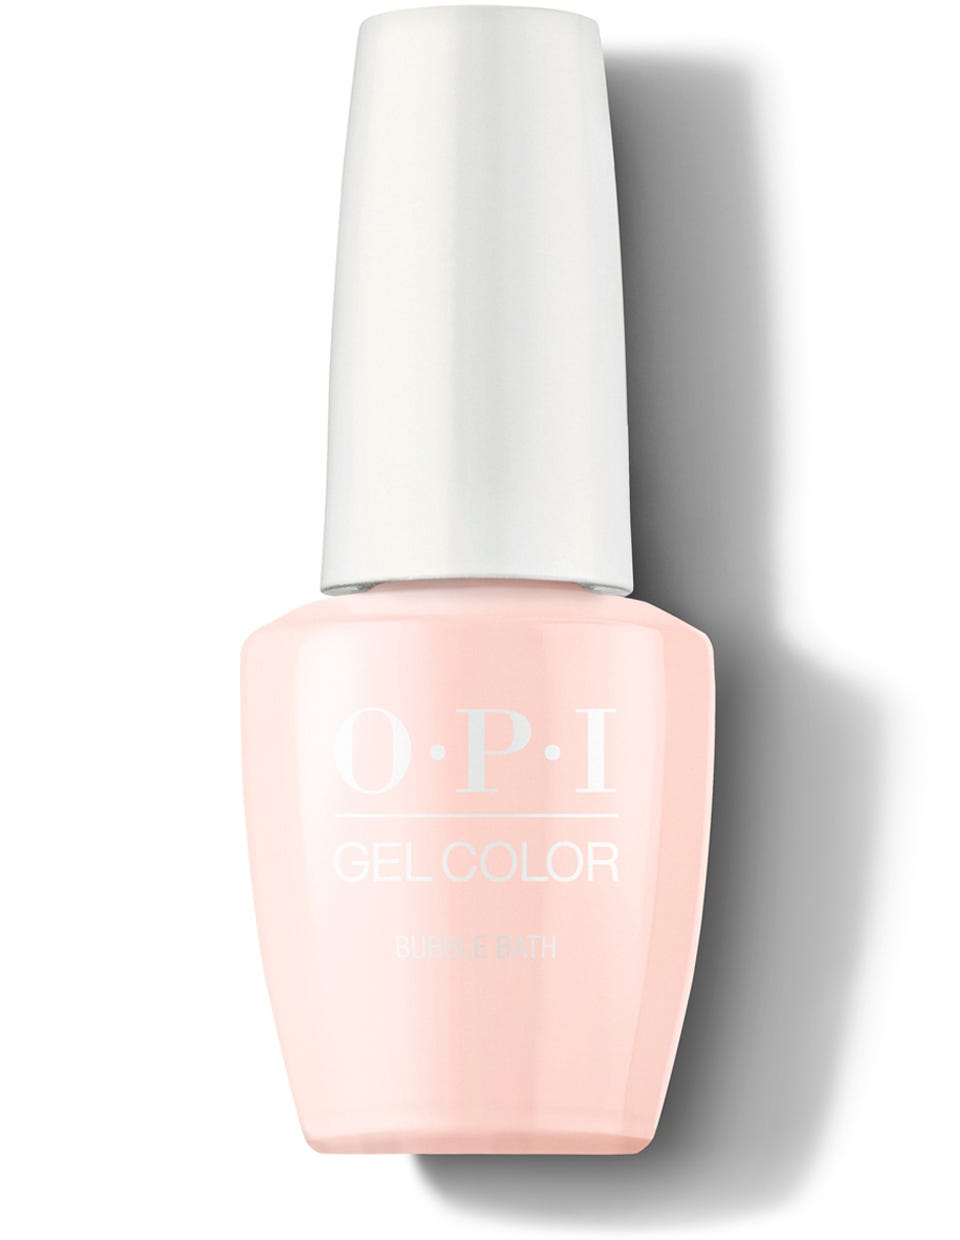 Best OPI Nail Polish Colors That Are All-Time Classics